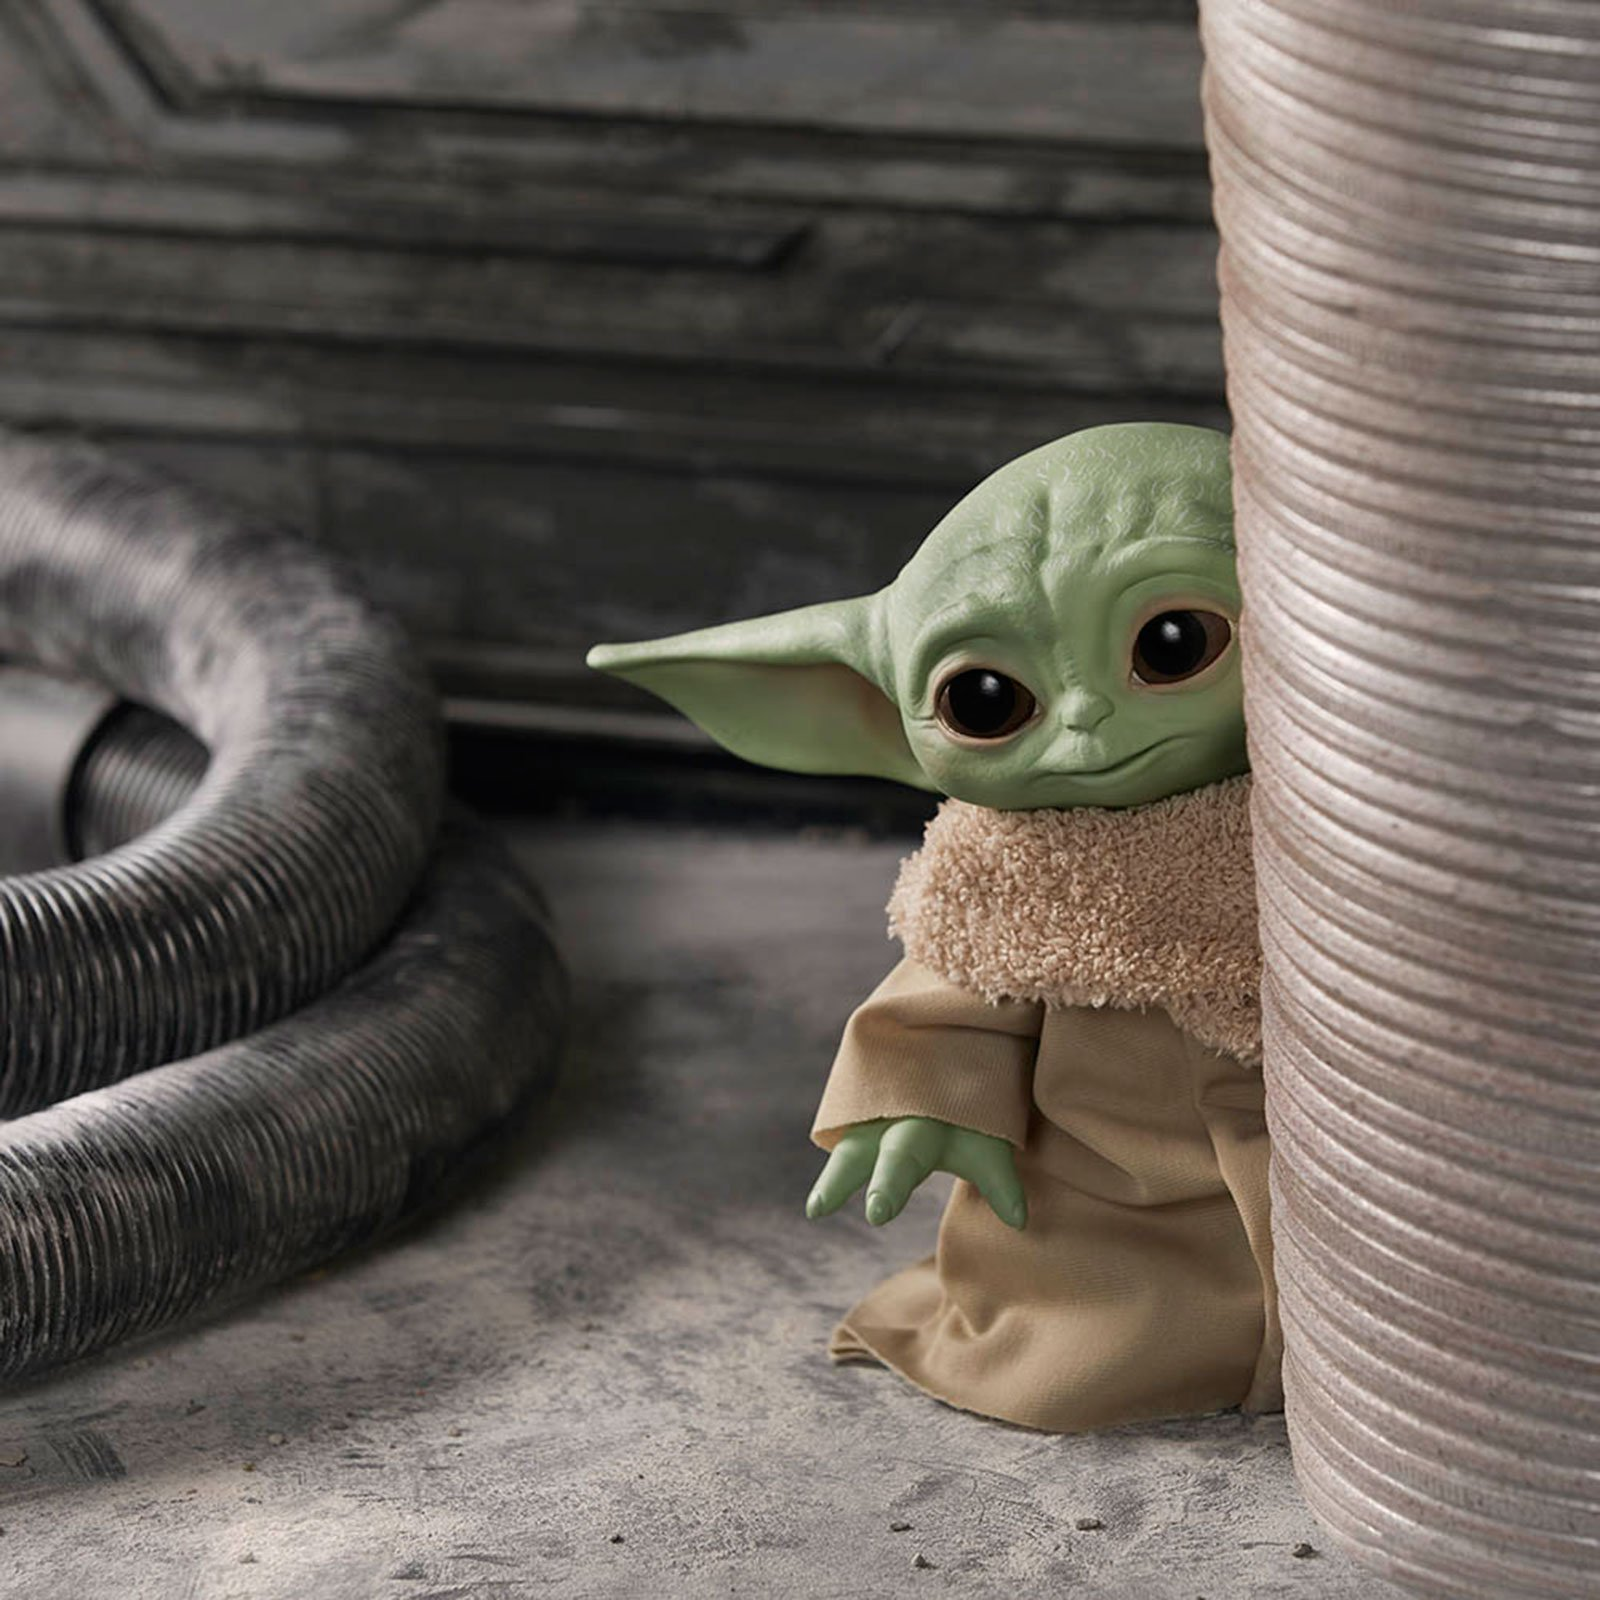 Hasbro rolls out official Baby Yoda toys